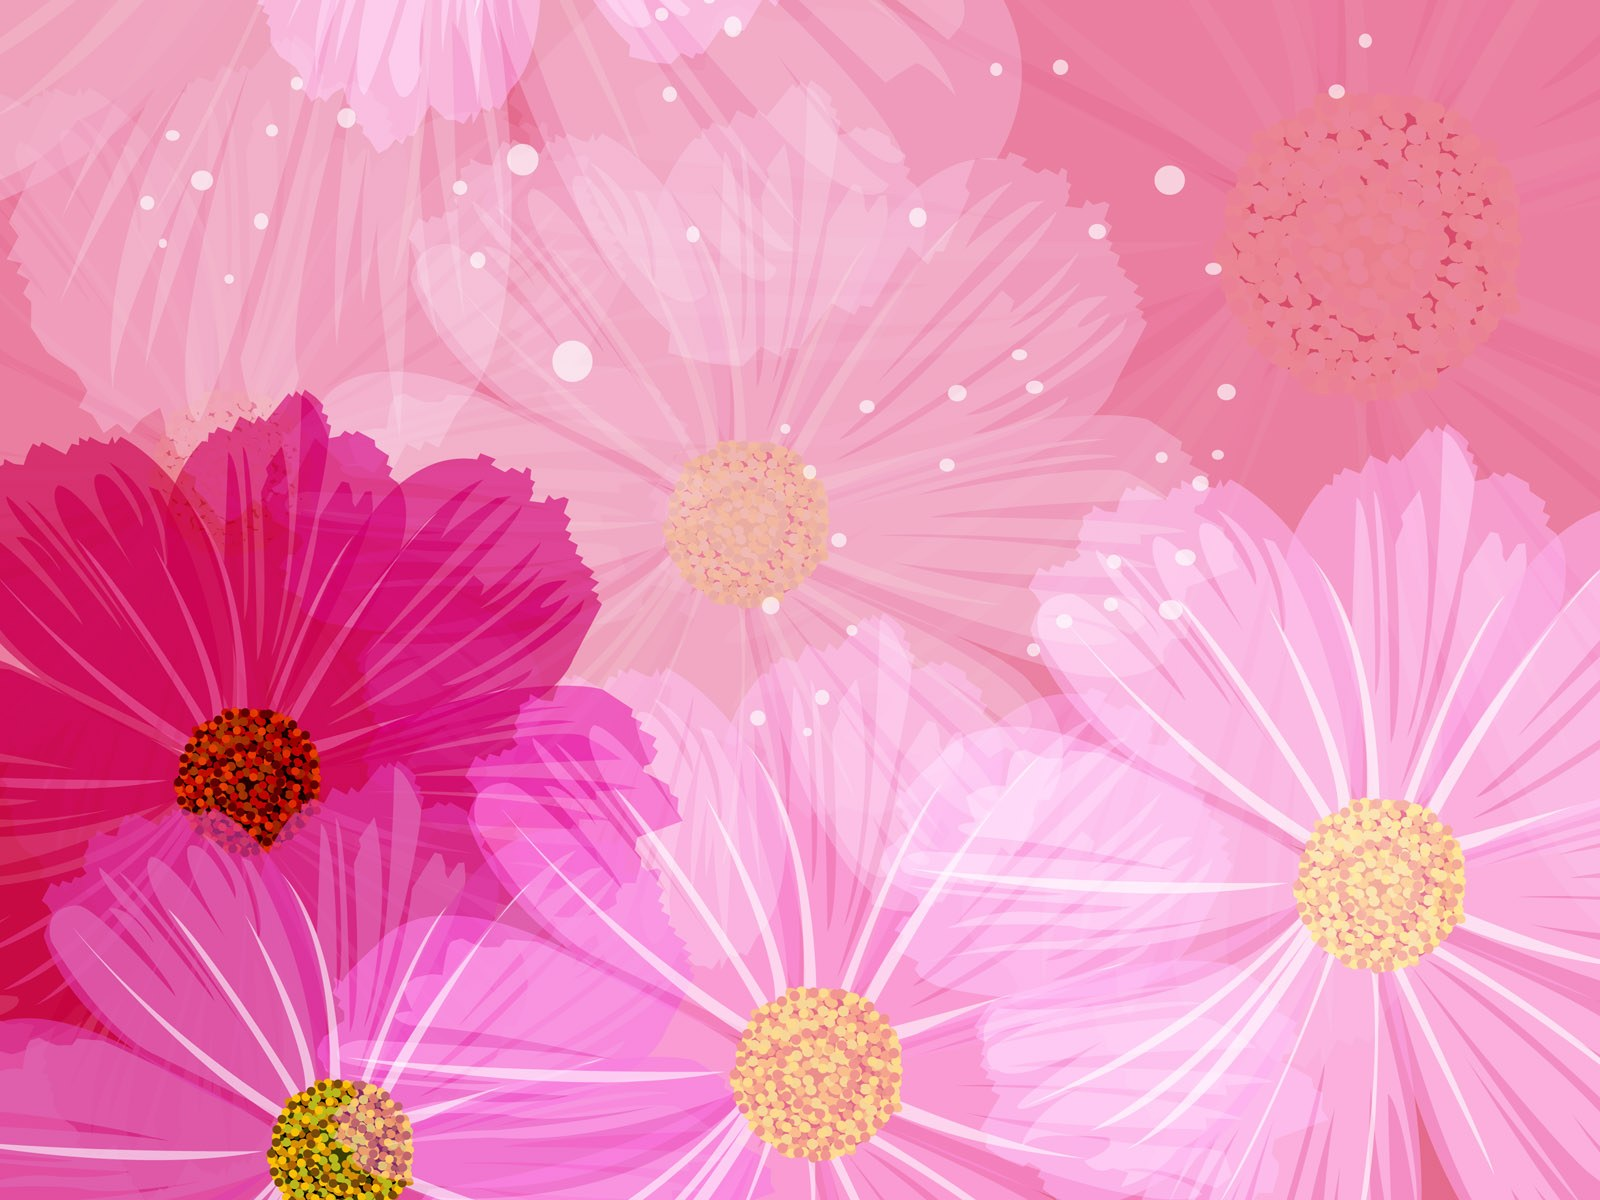 ... Pattern - Flower Design - Floral Background 1600*1200 Wallpaper 39